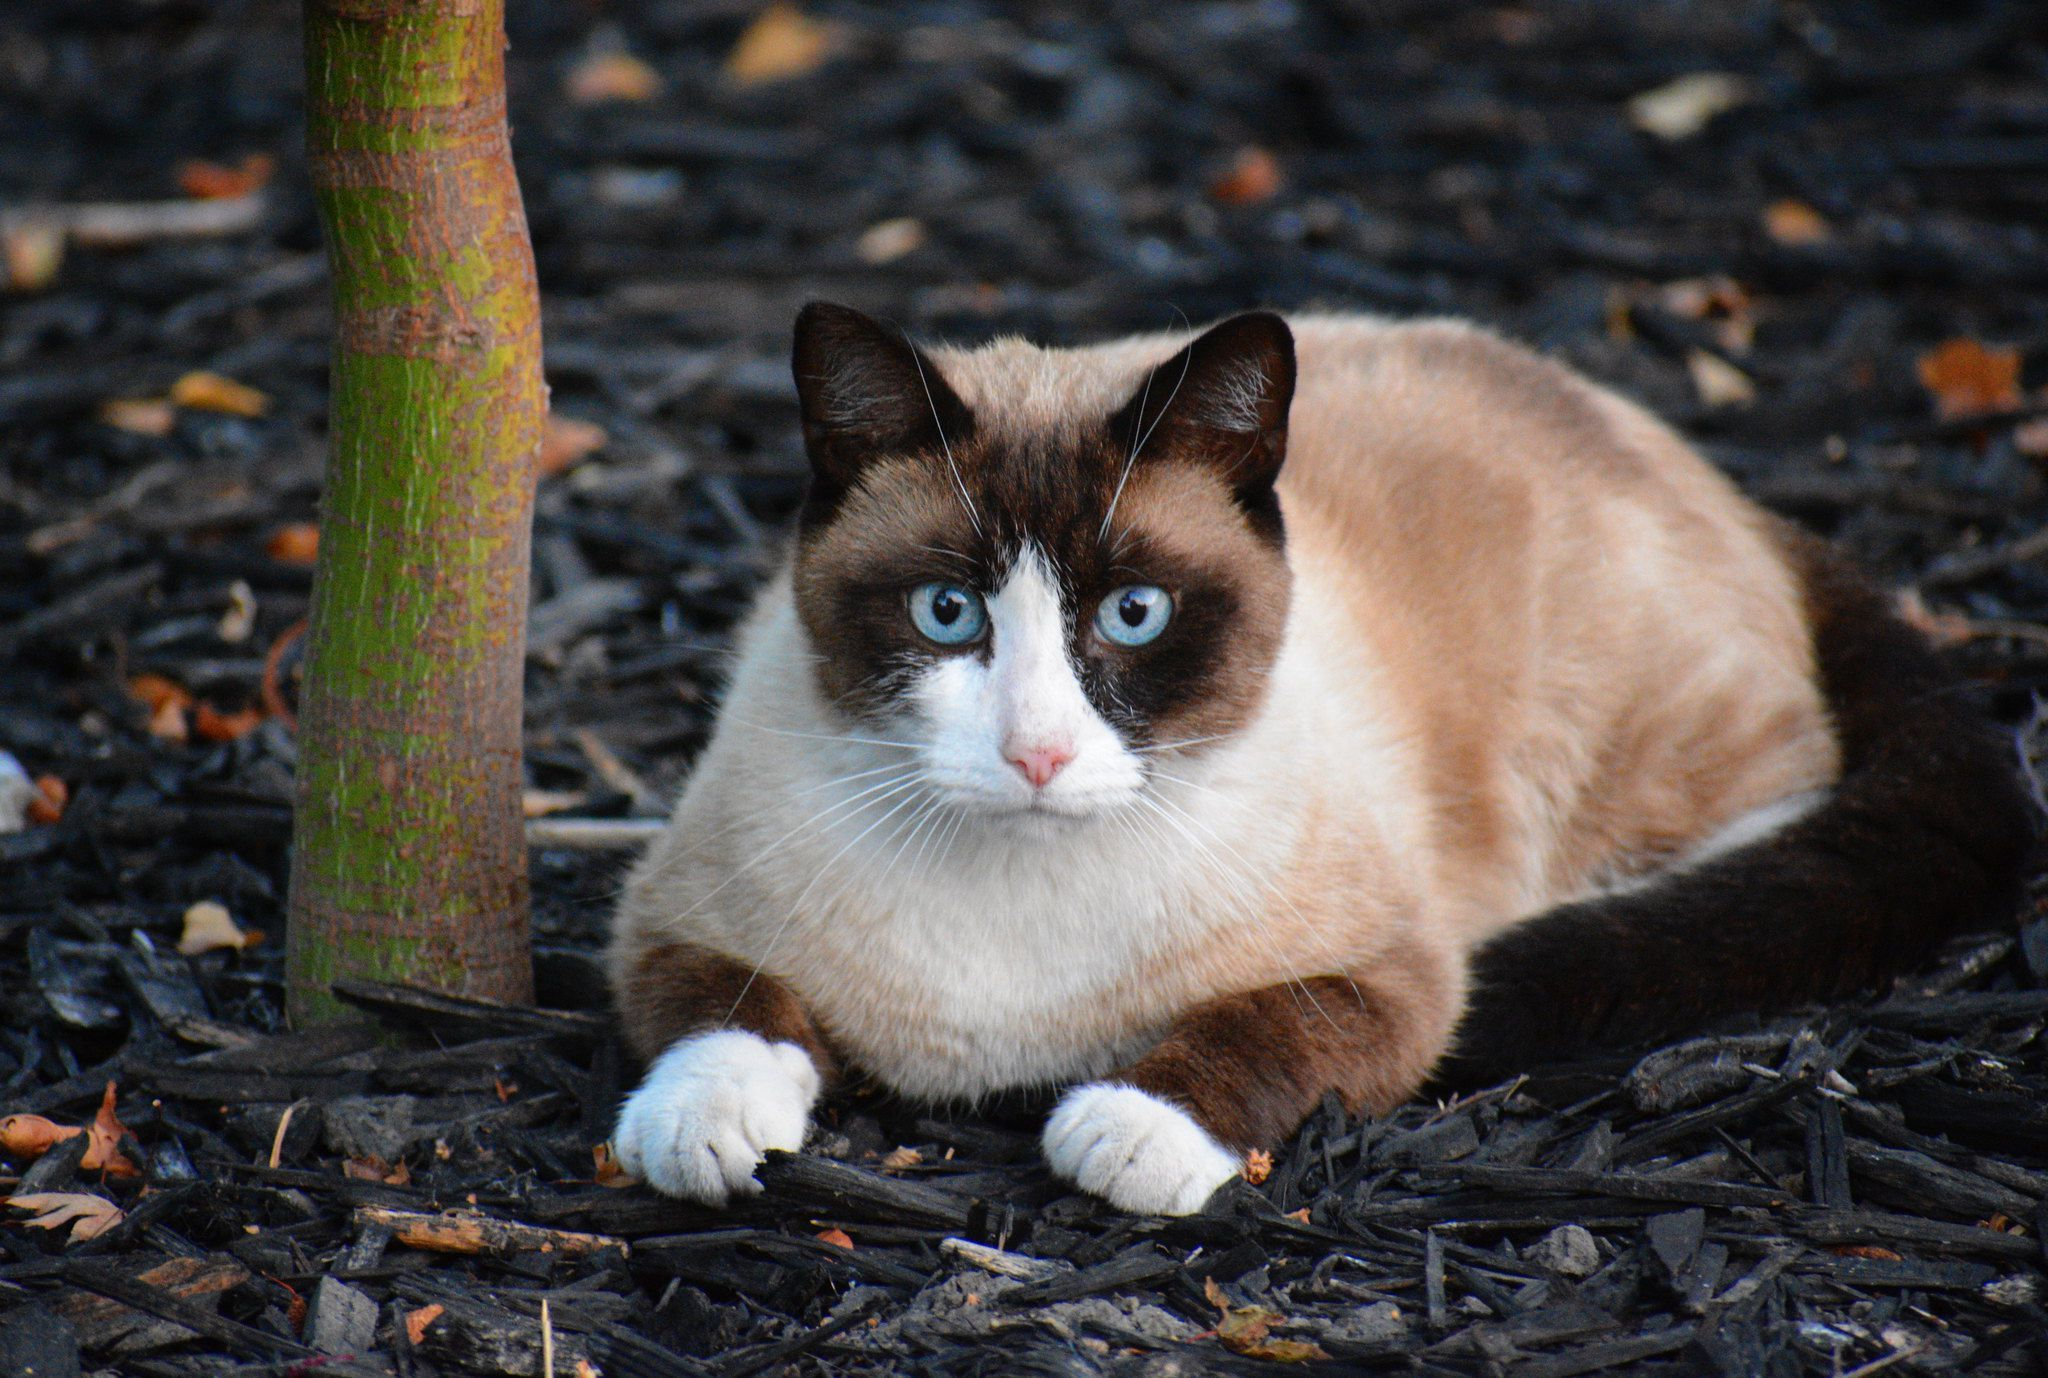 The Snowshoe Is A Mix Of American Short Hair And Siamese Cats They Are An Intelligent And Affectionate Breed That Th In 2020 Snowshoe Cat Cat Playground Cat Repellant